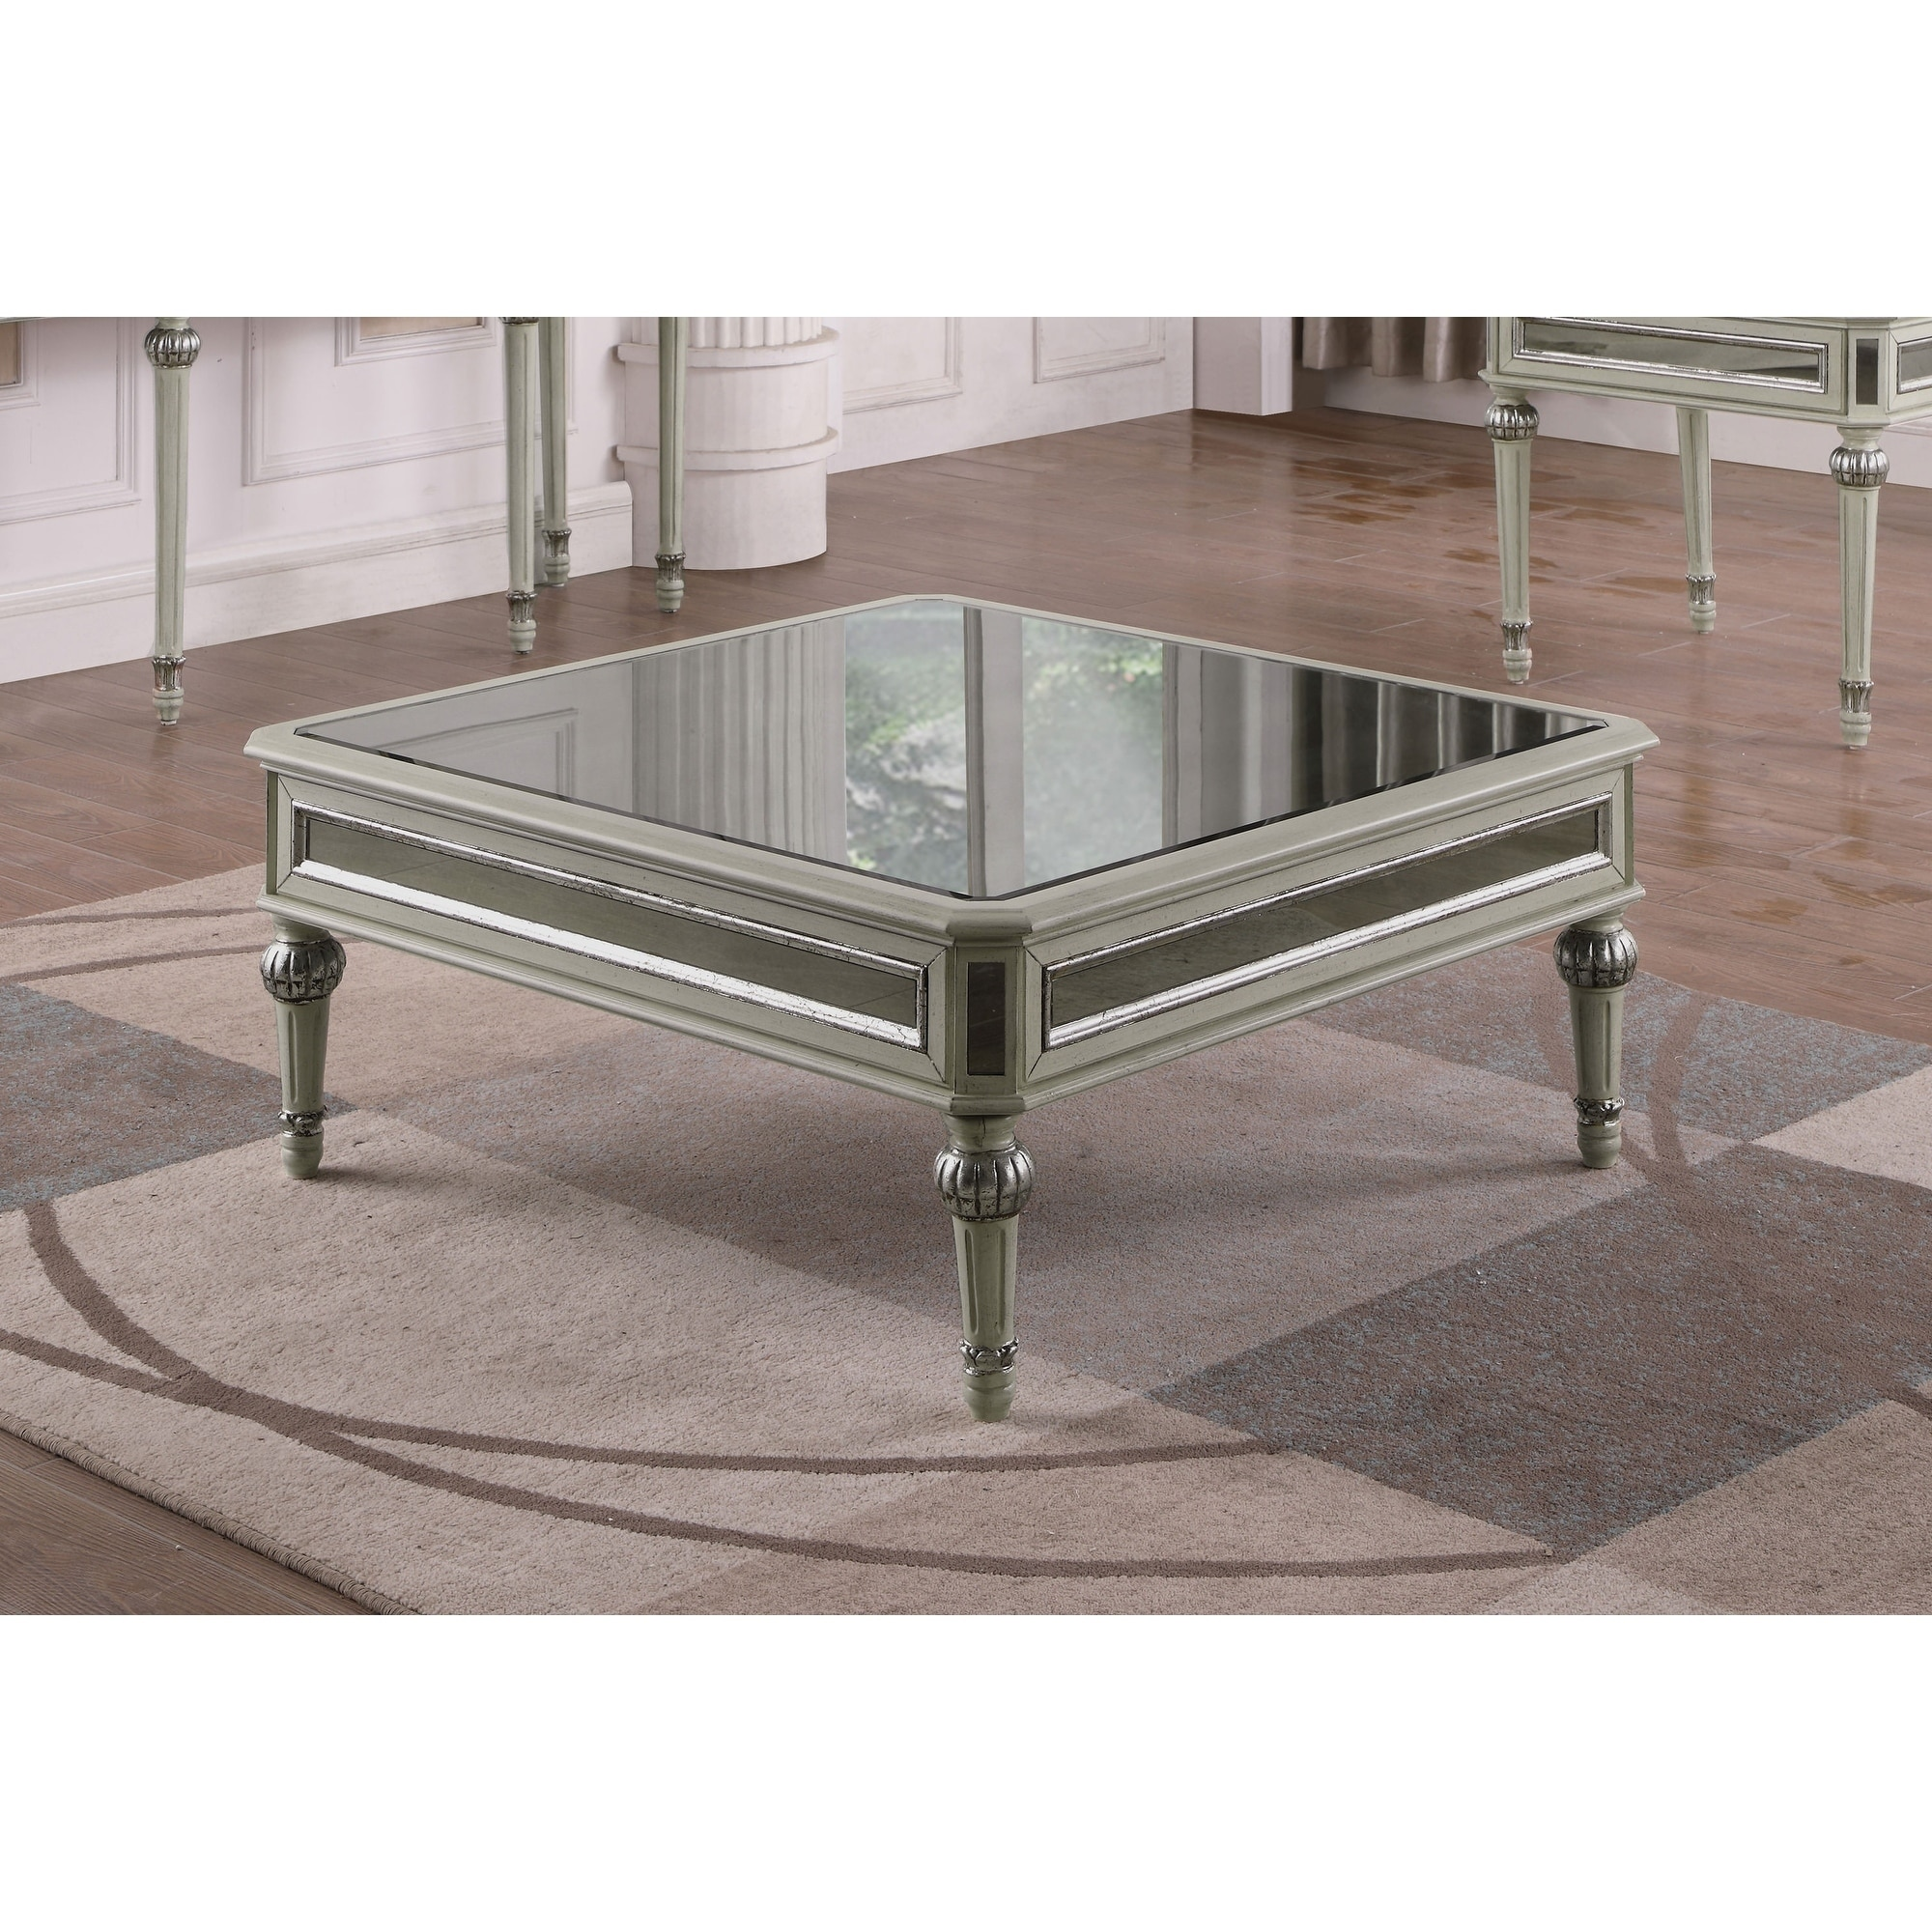 Charmant Shop Best Master Furniture Antique Cream With Mirrored Square Coffee Table    Free Shipping Today   Overstock.com   21383517